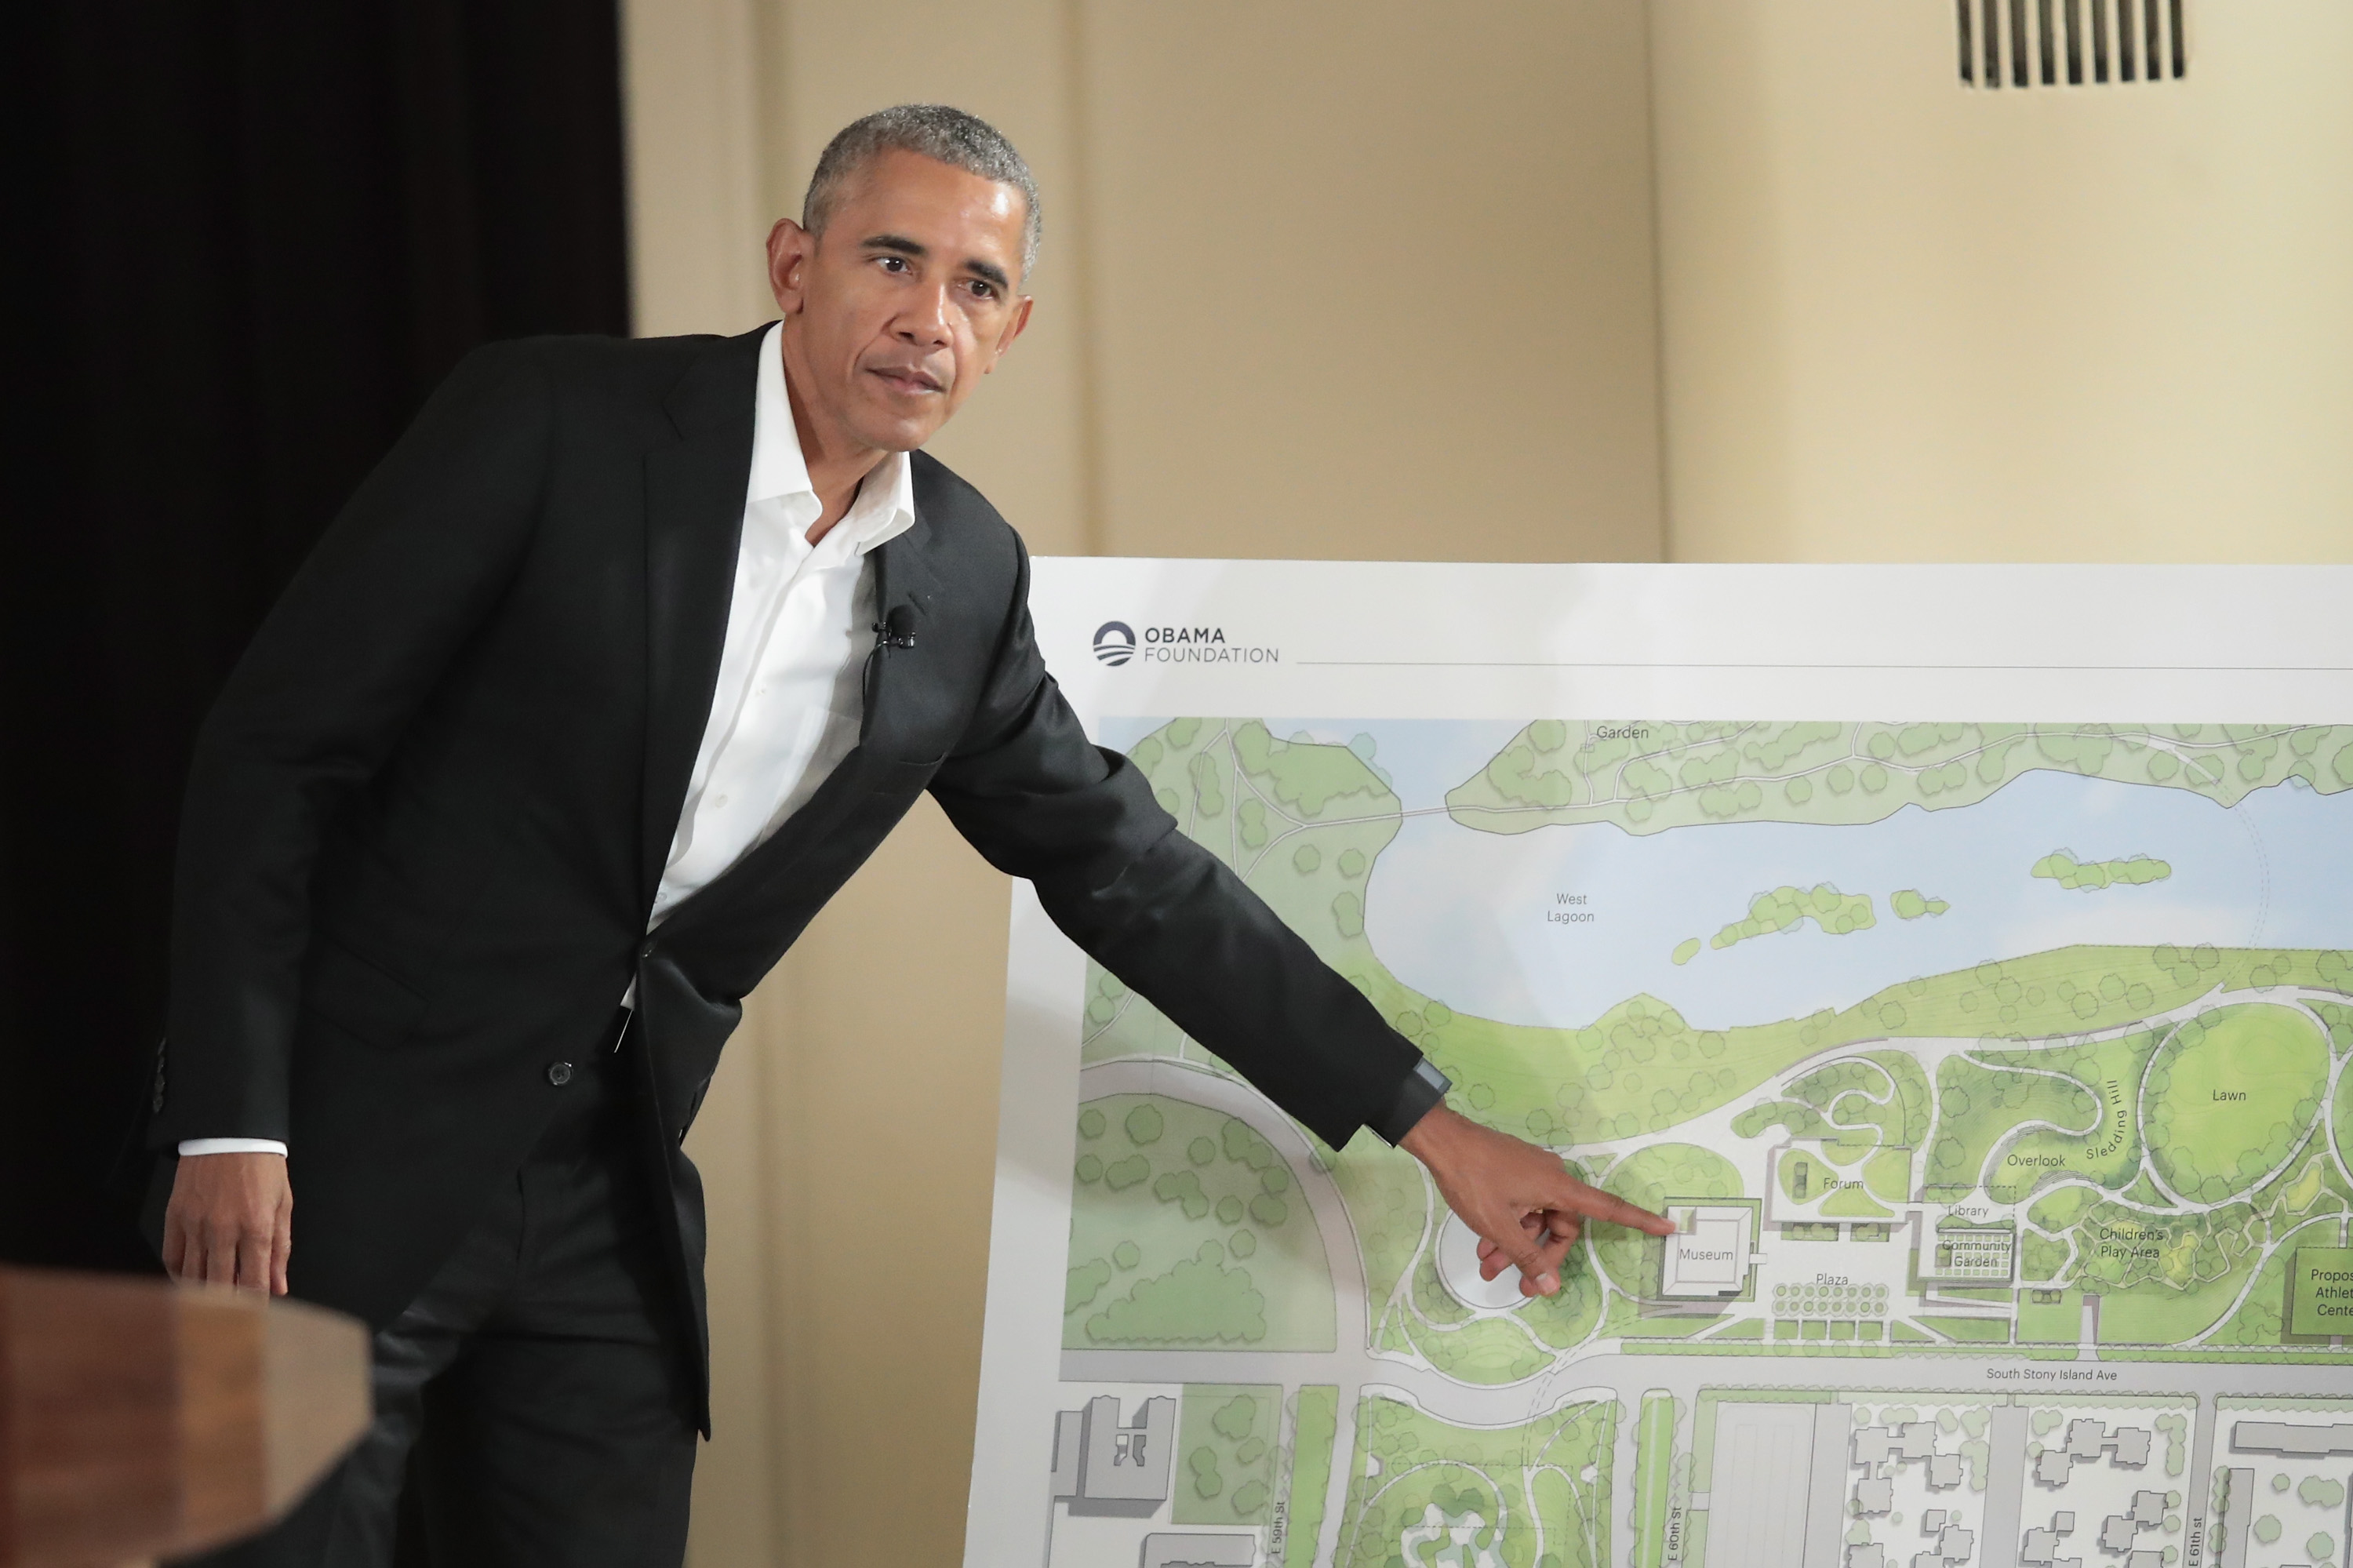 Former President Barack Obama points out features of the proposed Obama Presidential Center, to be built in Jackson Park, at the South Shore Cultural Center on May 3, 2017.